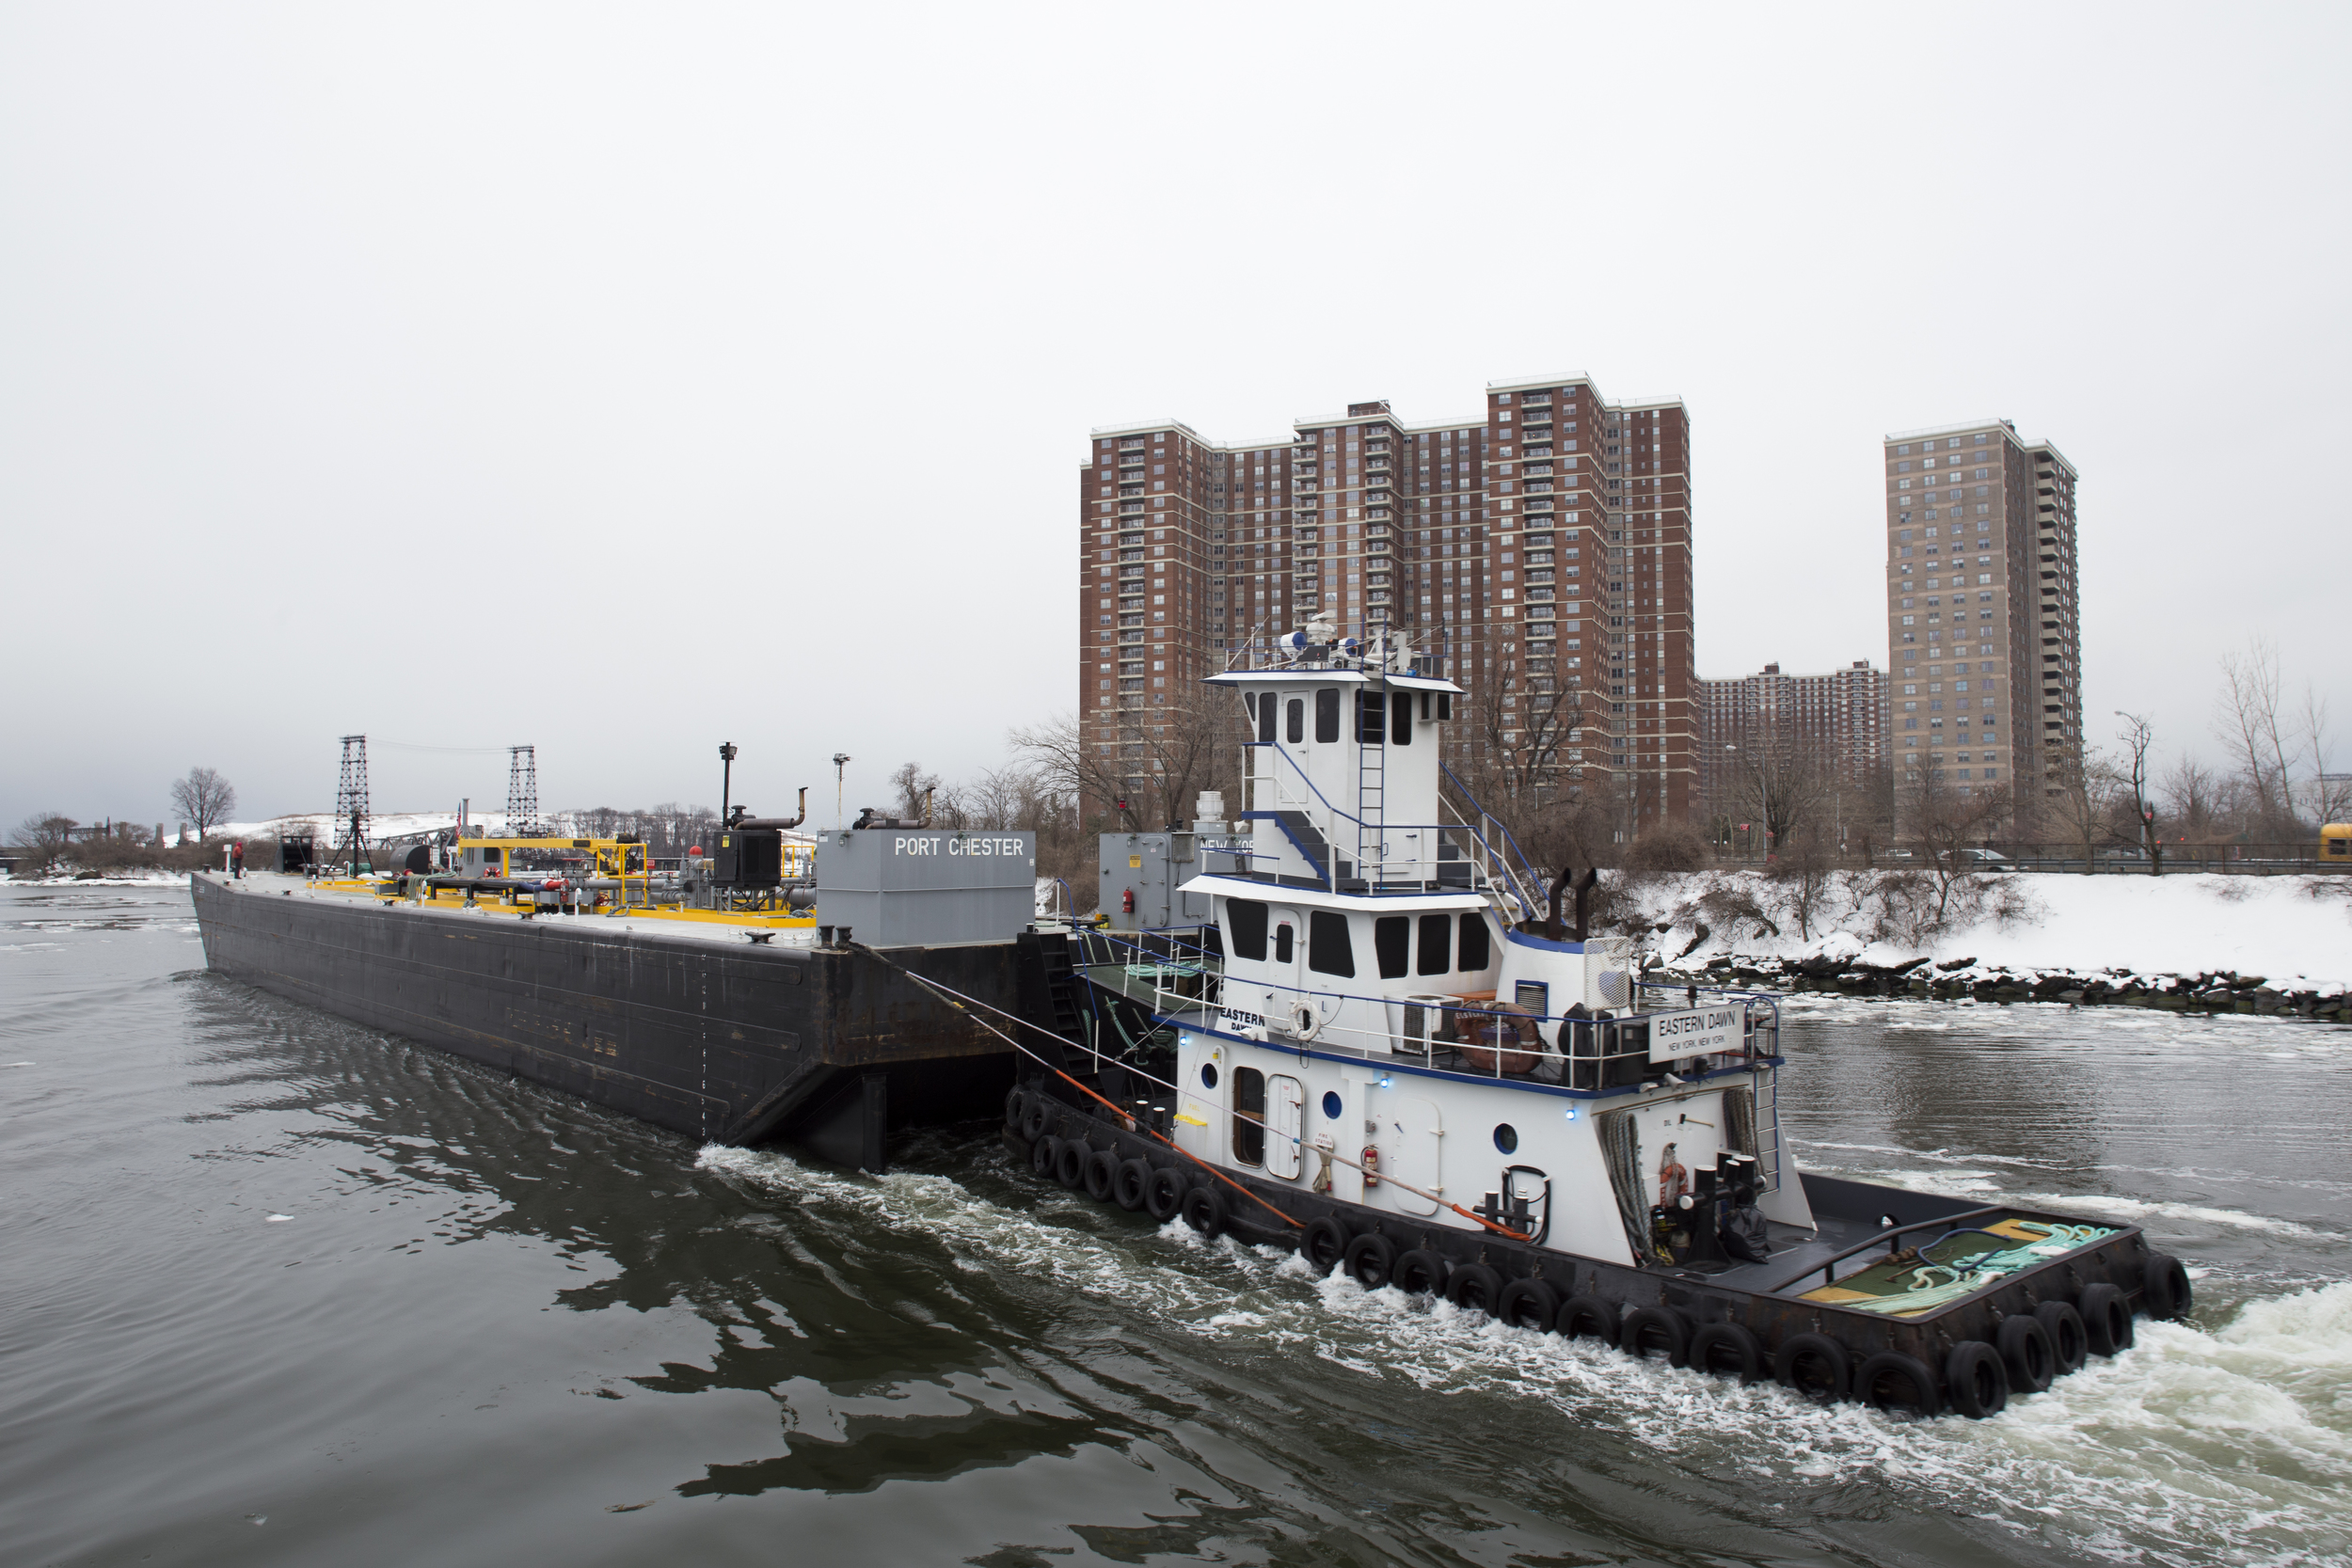 A Vane Brothers tug pushes an empty oil barge past housing projects in the Bronx, which will use the oil for heat. Barges sit high in the water when empty, forcing captains to climb to an upper cockpit, often just a tiny unheated room with a steering wheel, to see over the top of the barge.